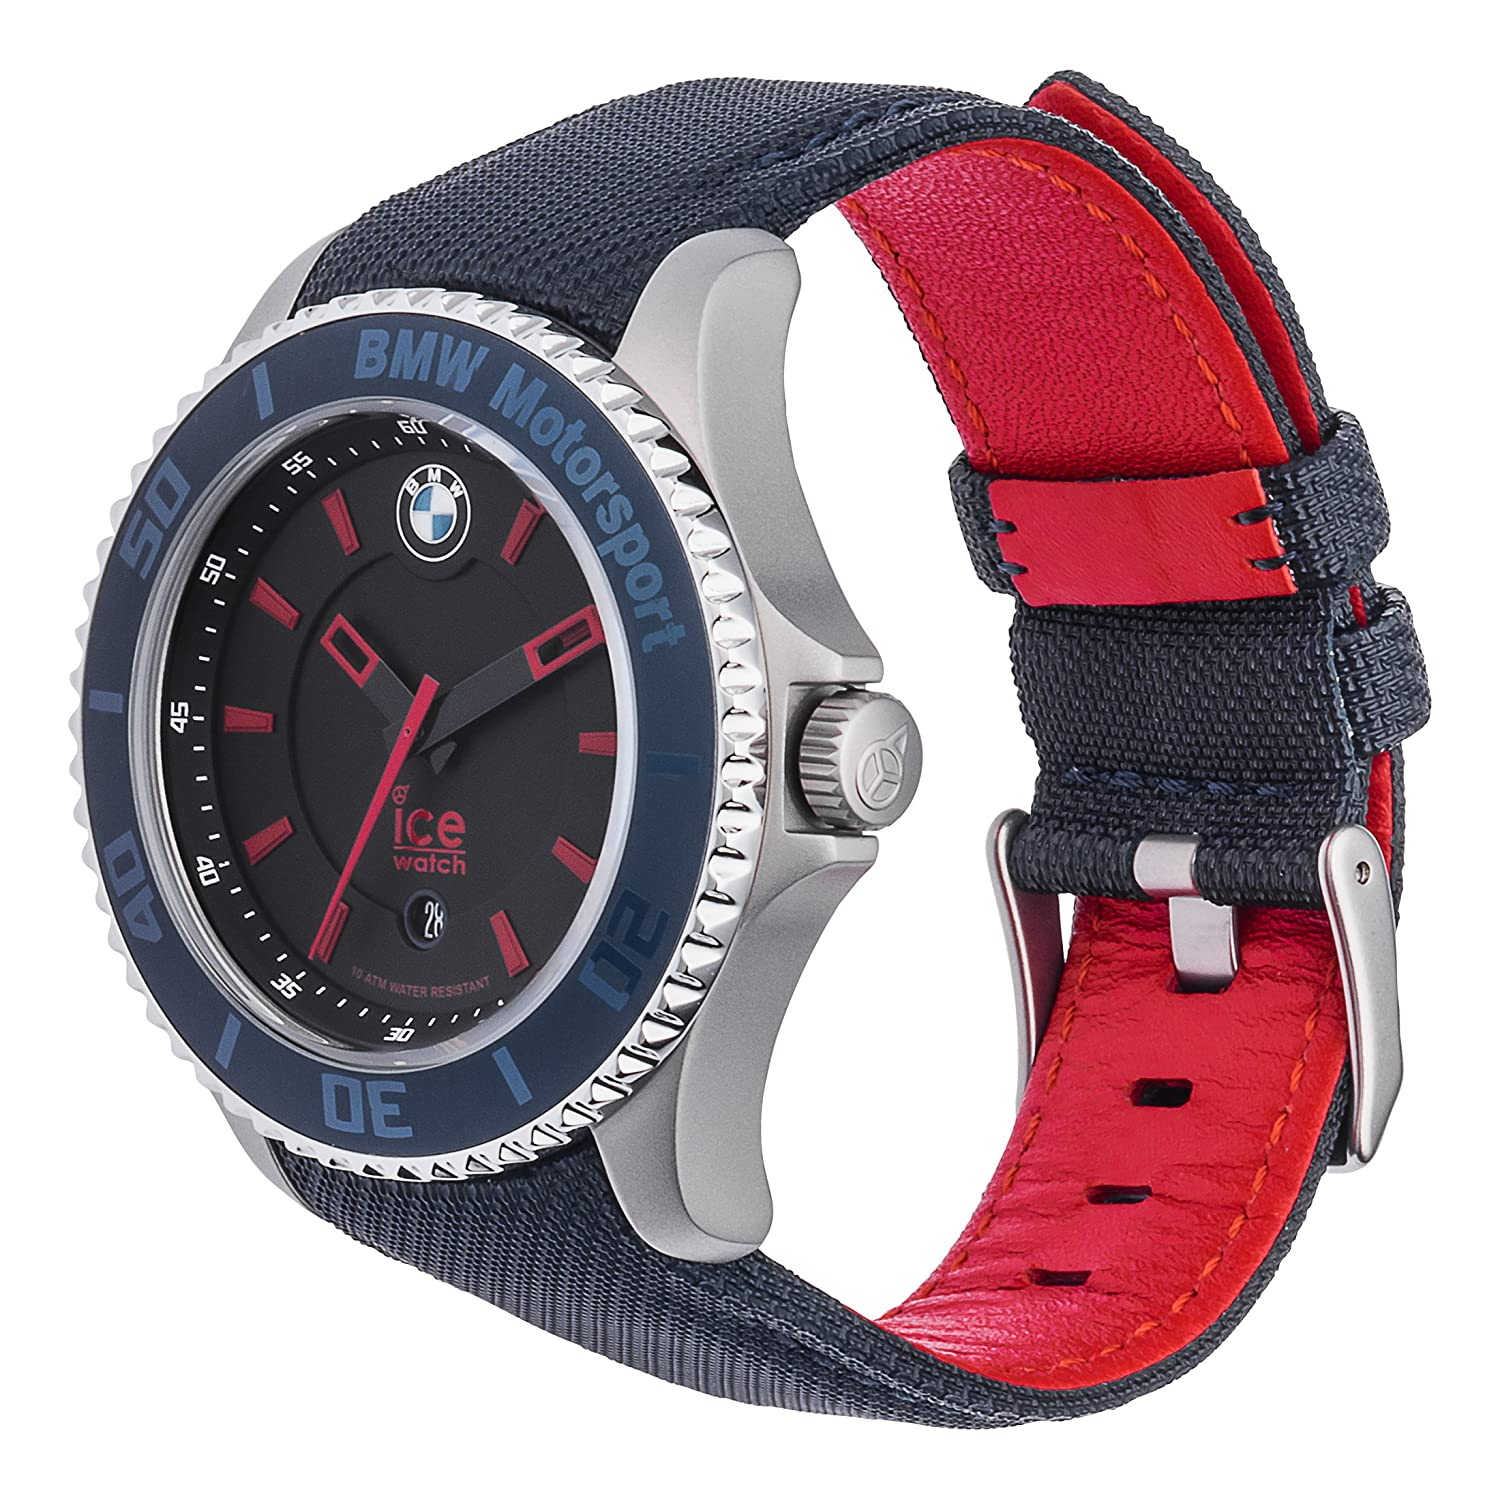 Ice-Watch - BMW Motorsport (steel) Blue Red - Men s wristwatch with leather  strap - 001114 (Medium)  Amazon.co.uk  Watches e35450b552